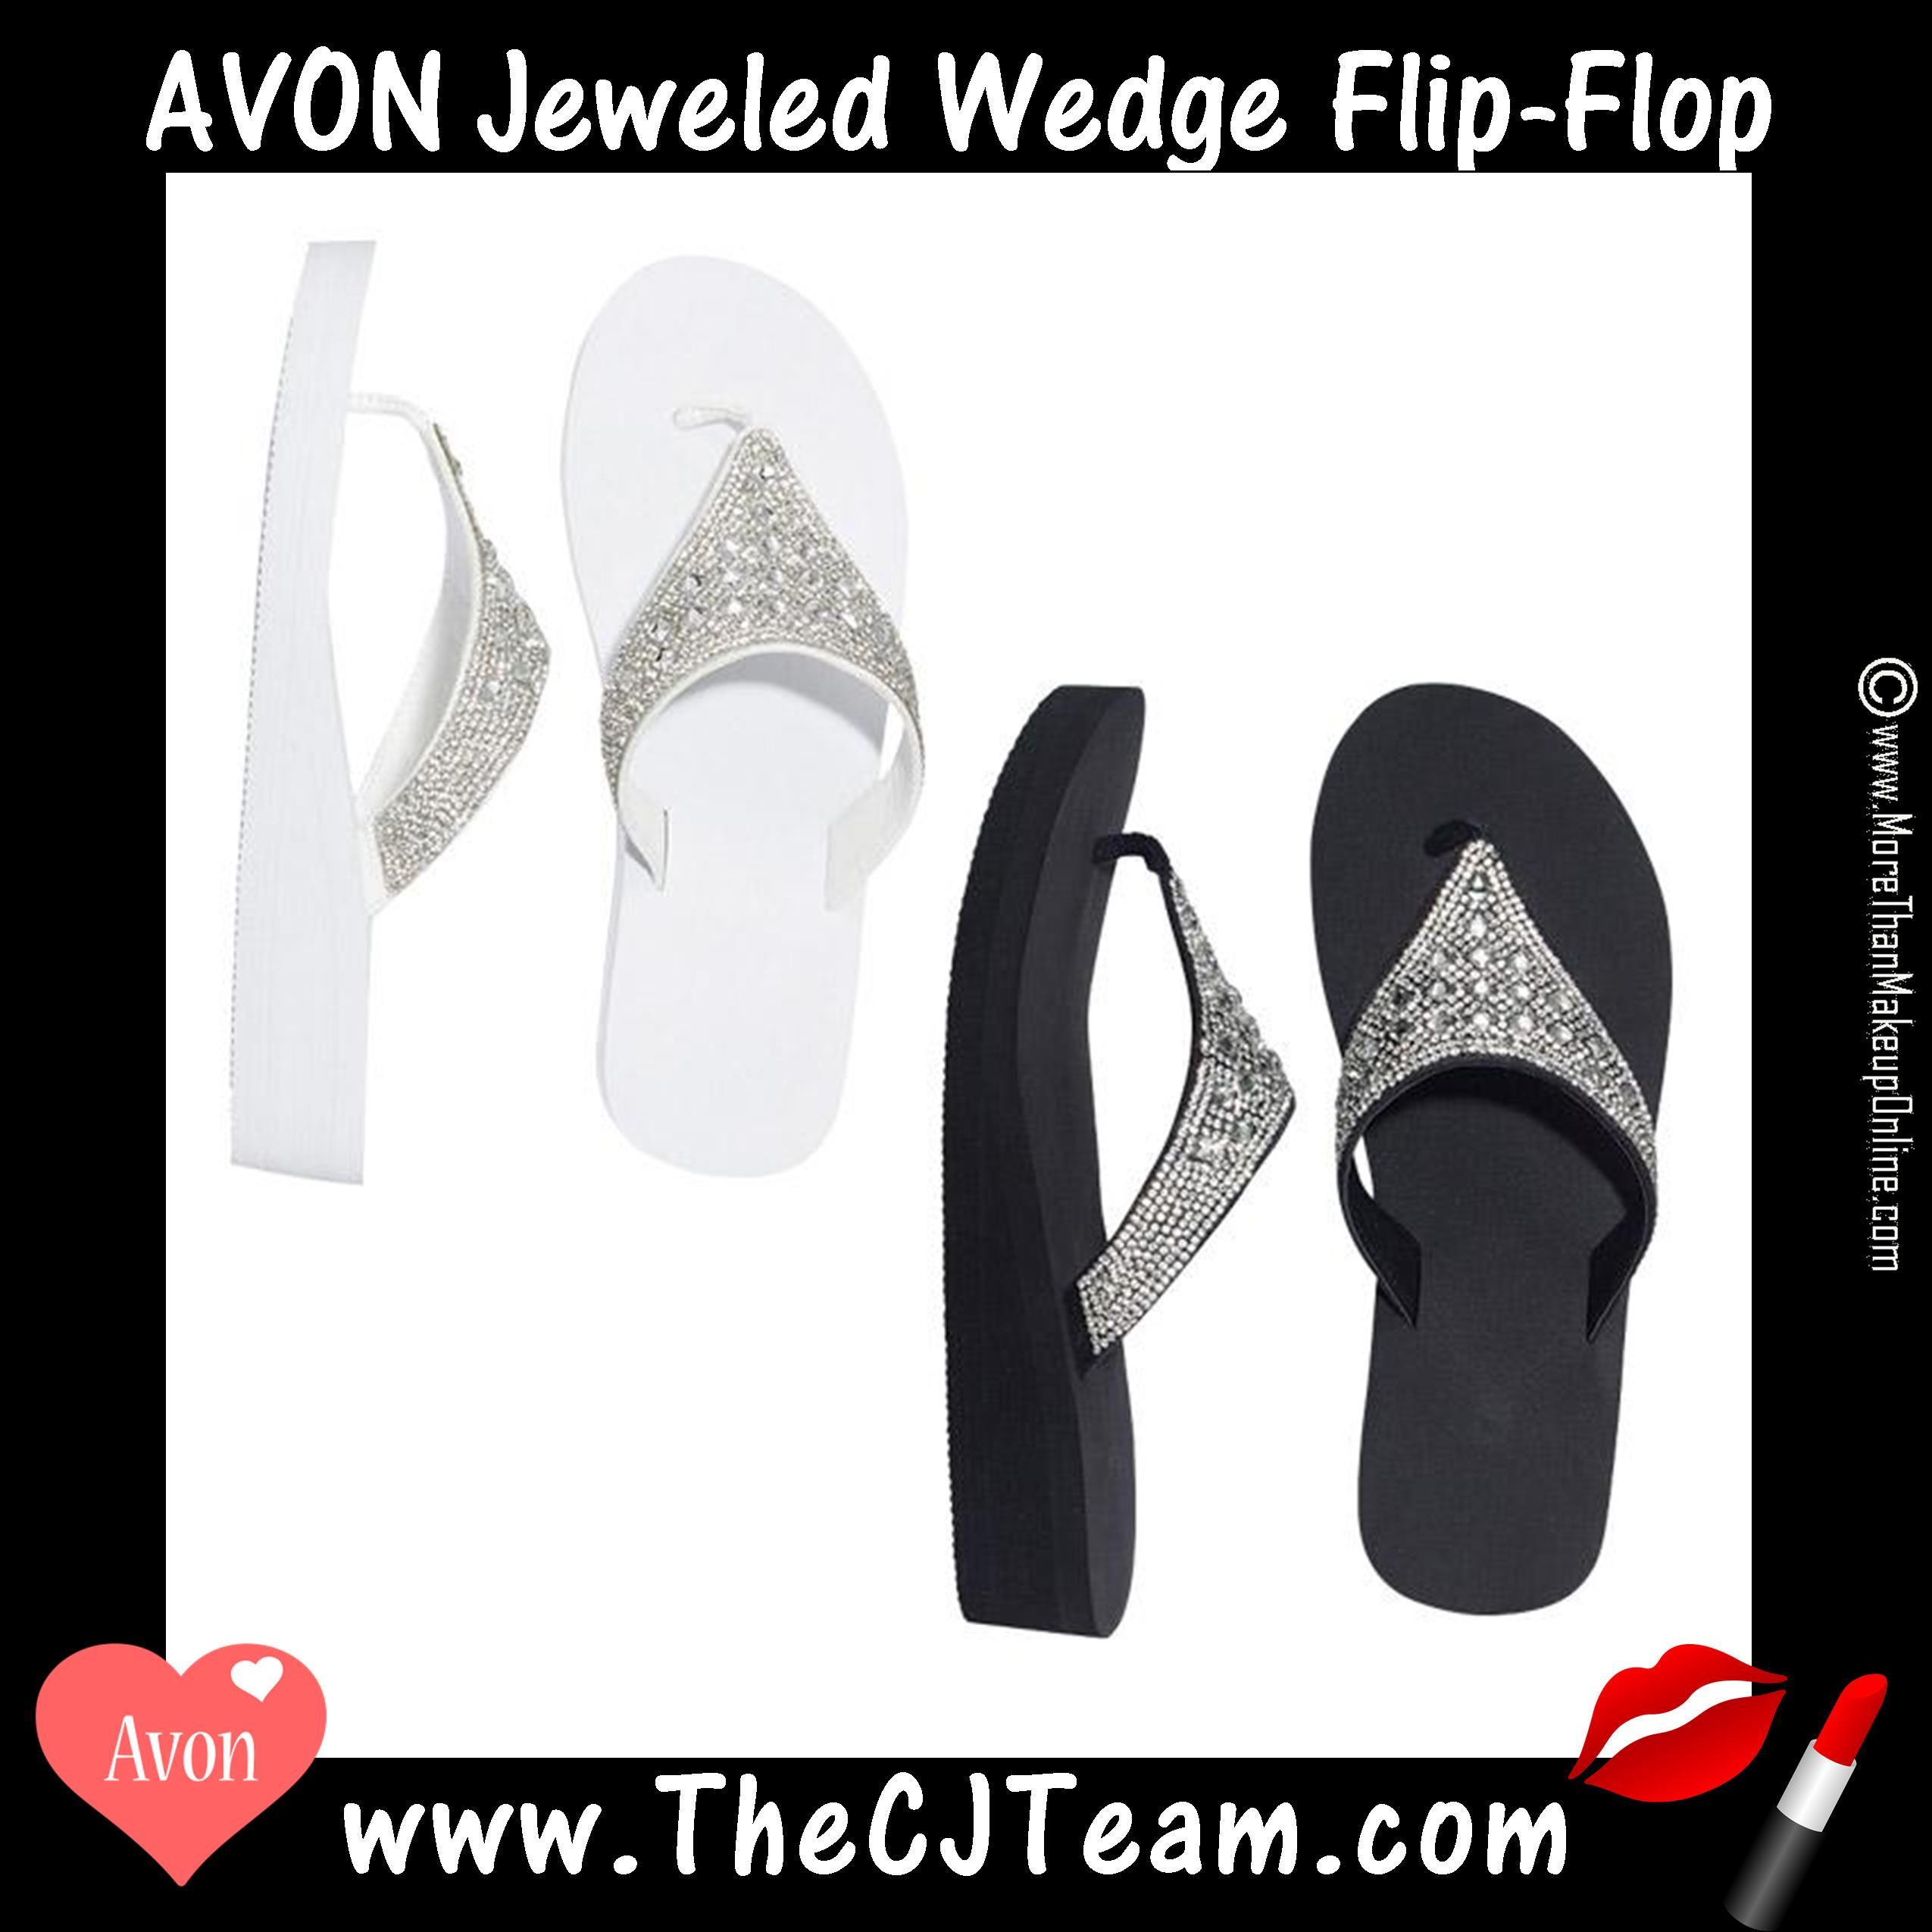 72bc25ea1acd9 Jeweled Wedge Flip-Flop. Avon. Dress up or dress down with flip-flops that  match any occasion. Whether you re hitting the beach or dining out